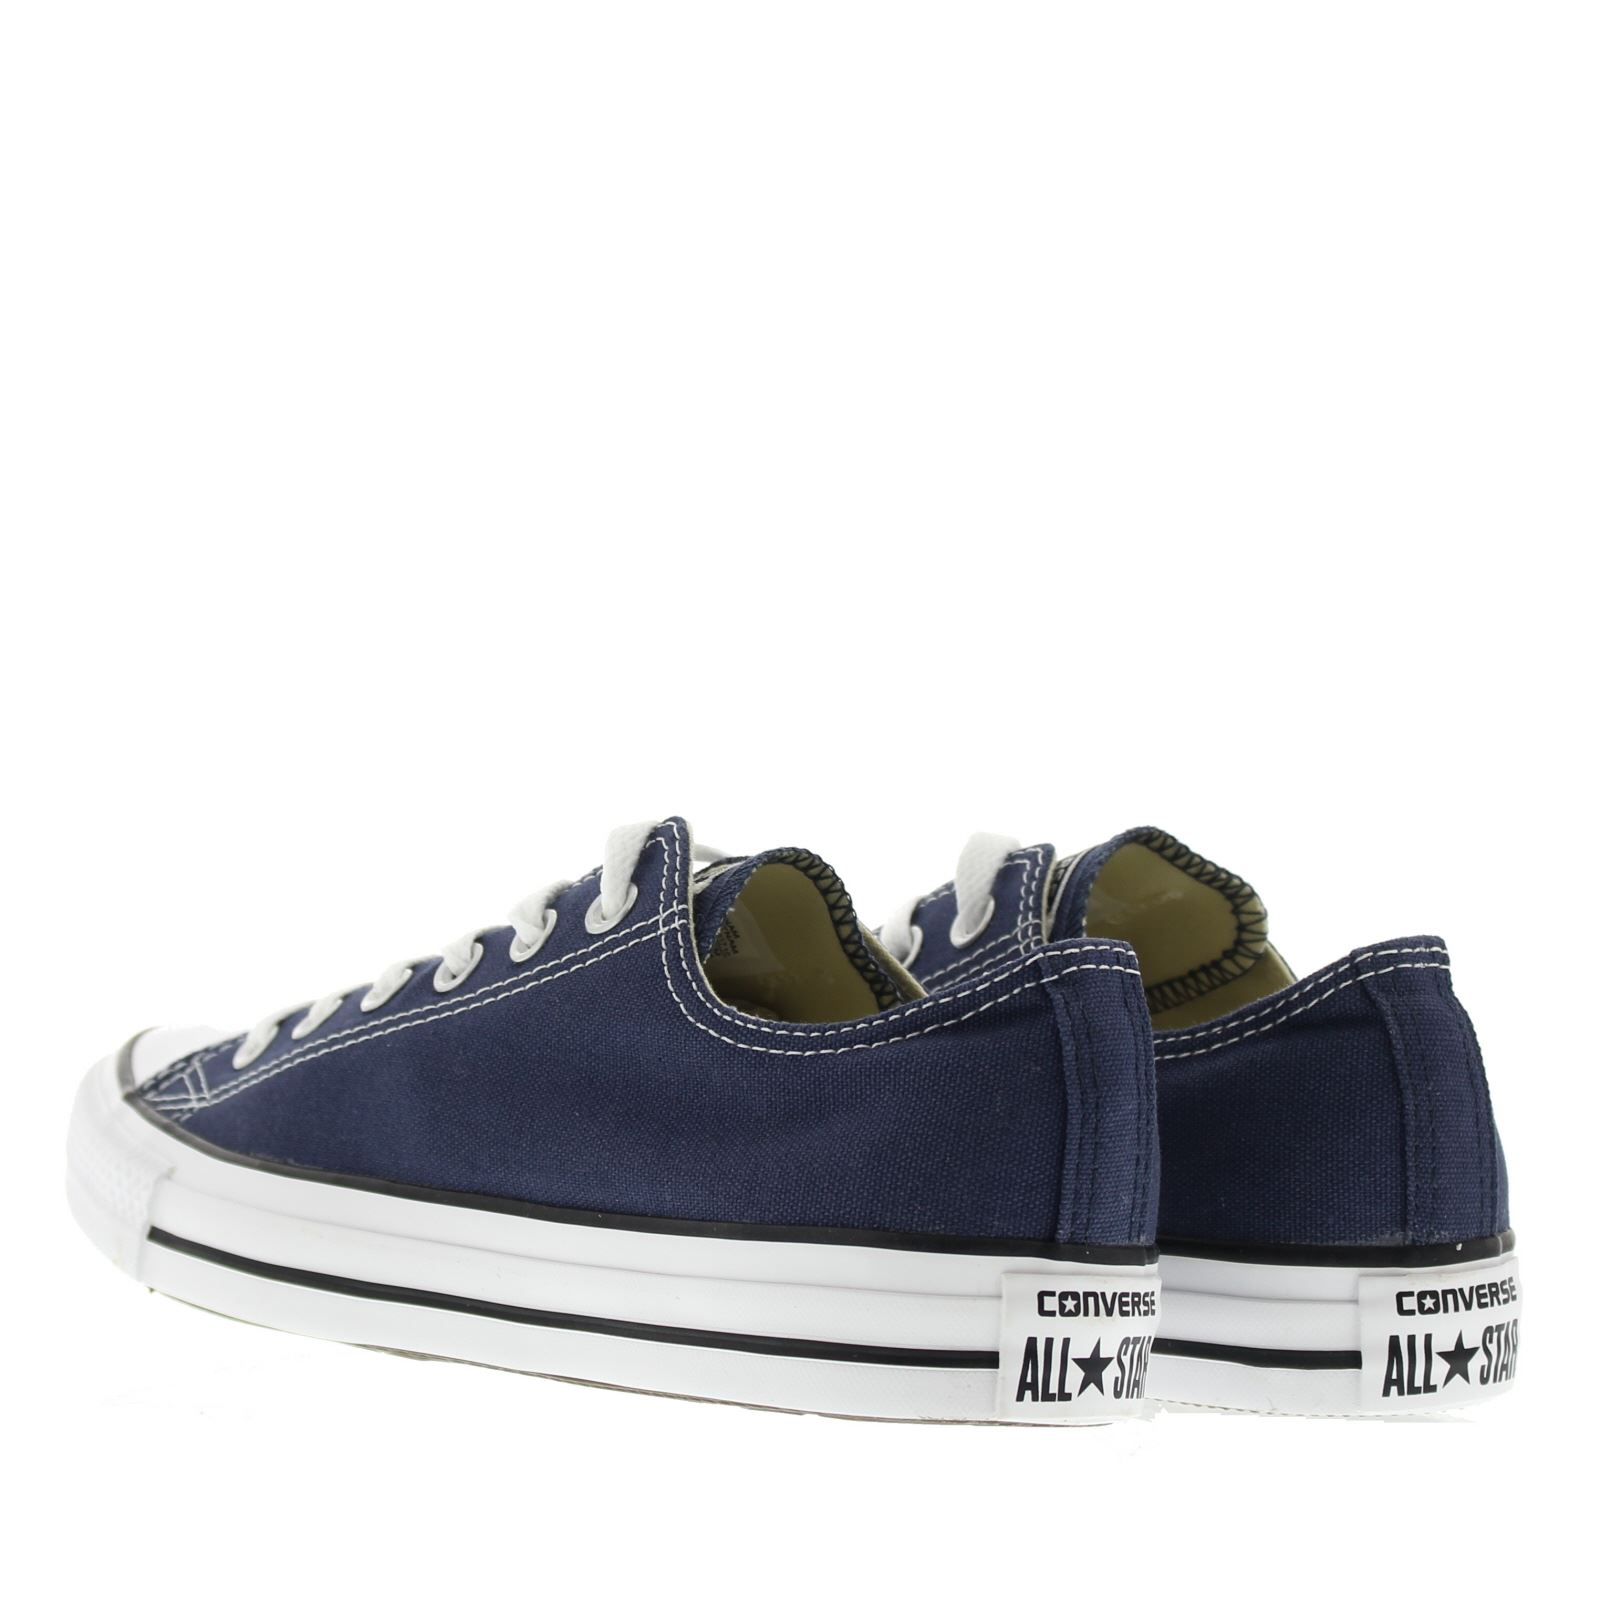 Converse-All-Star-Ox-Unisex-Mens-Womens-Ladies-Trainers thumbnail 13